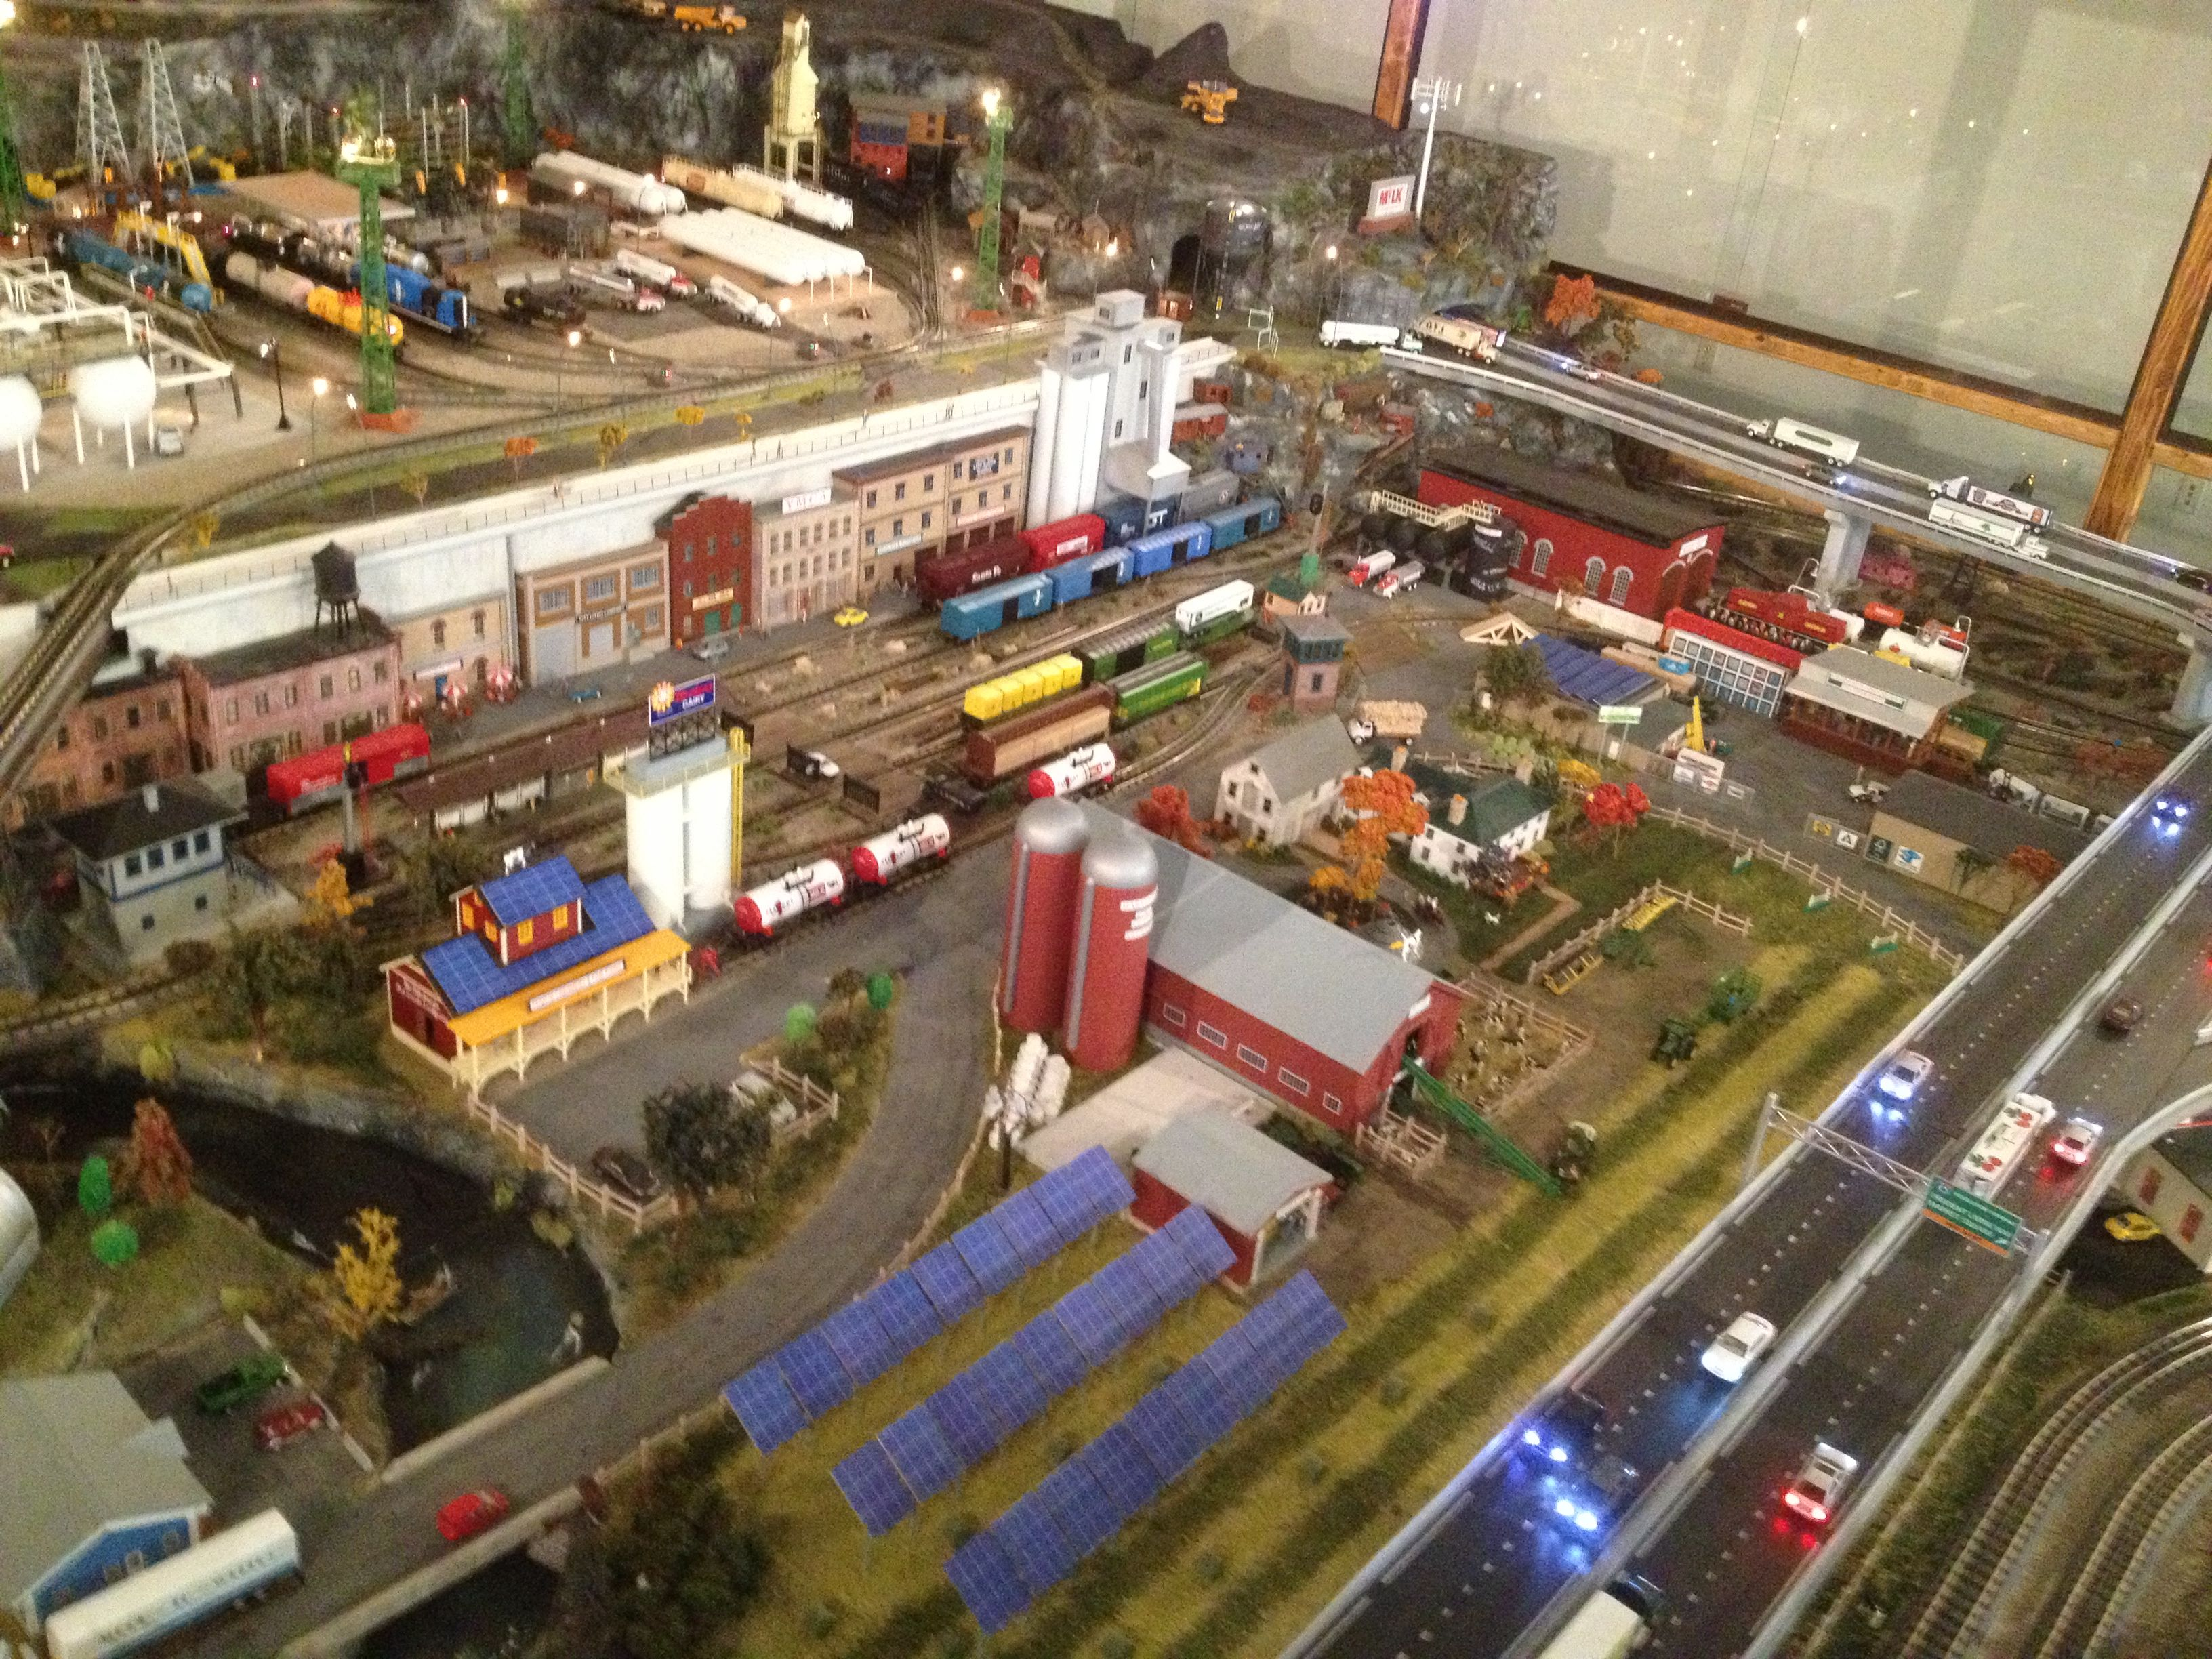 Train Village On Display At Lavalley Lumber In West Lebanon Nh